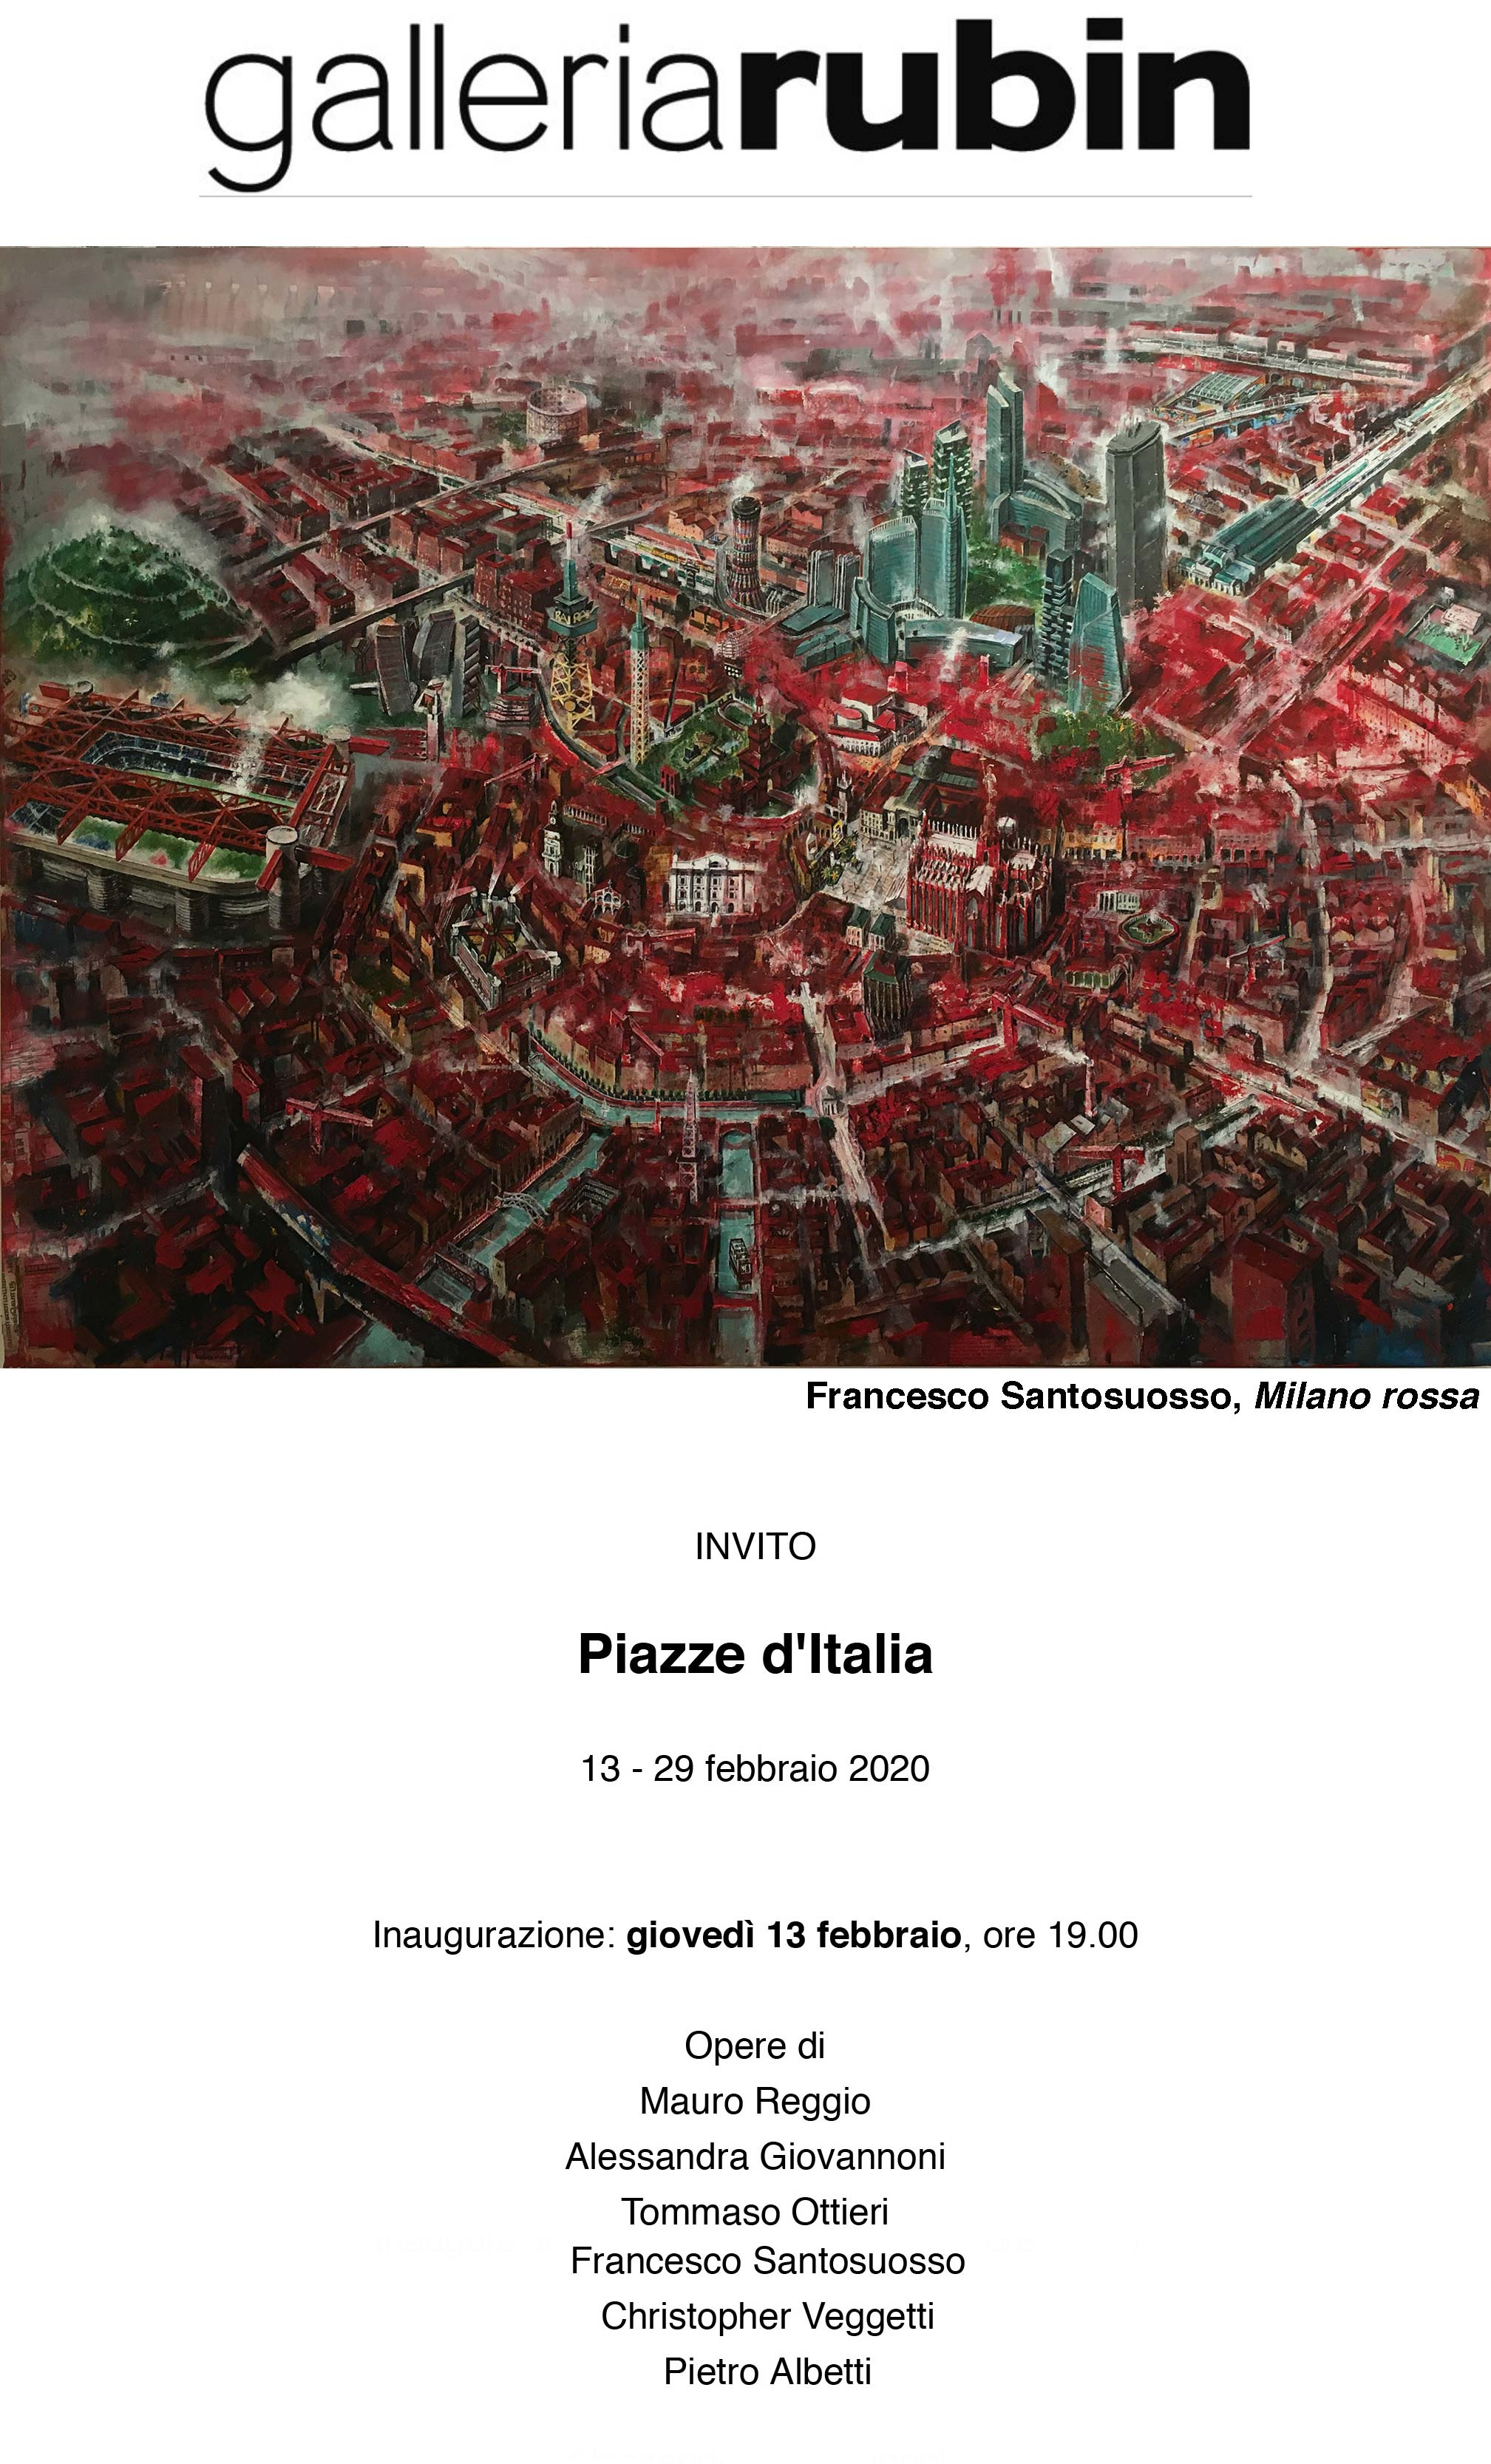 invito-Piazzed'Italia copia